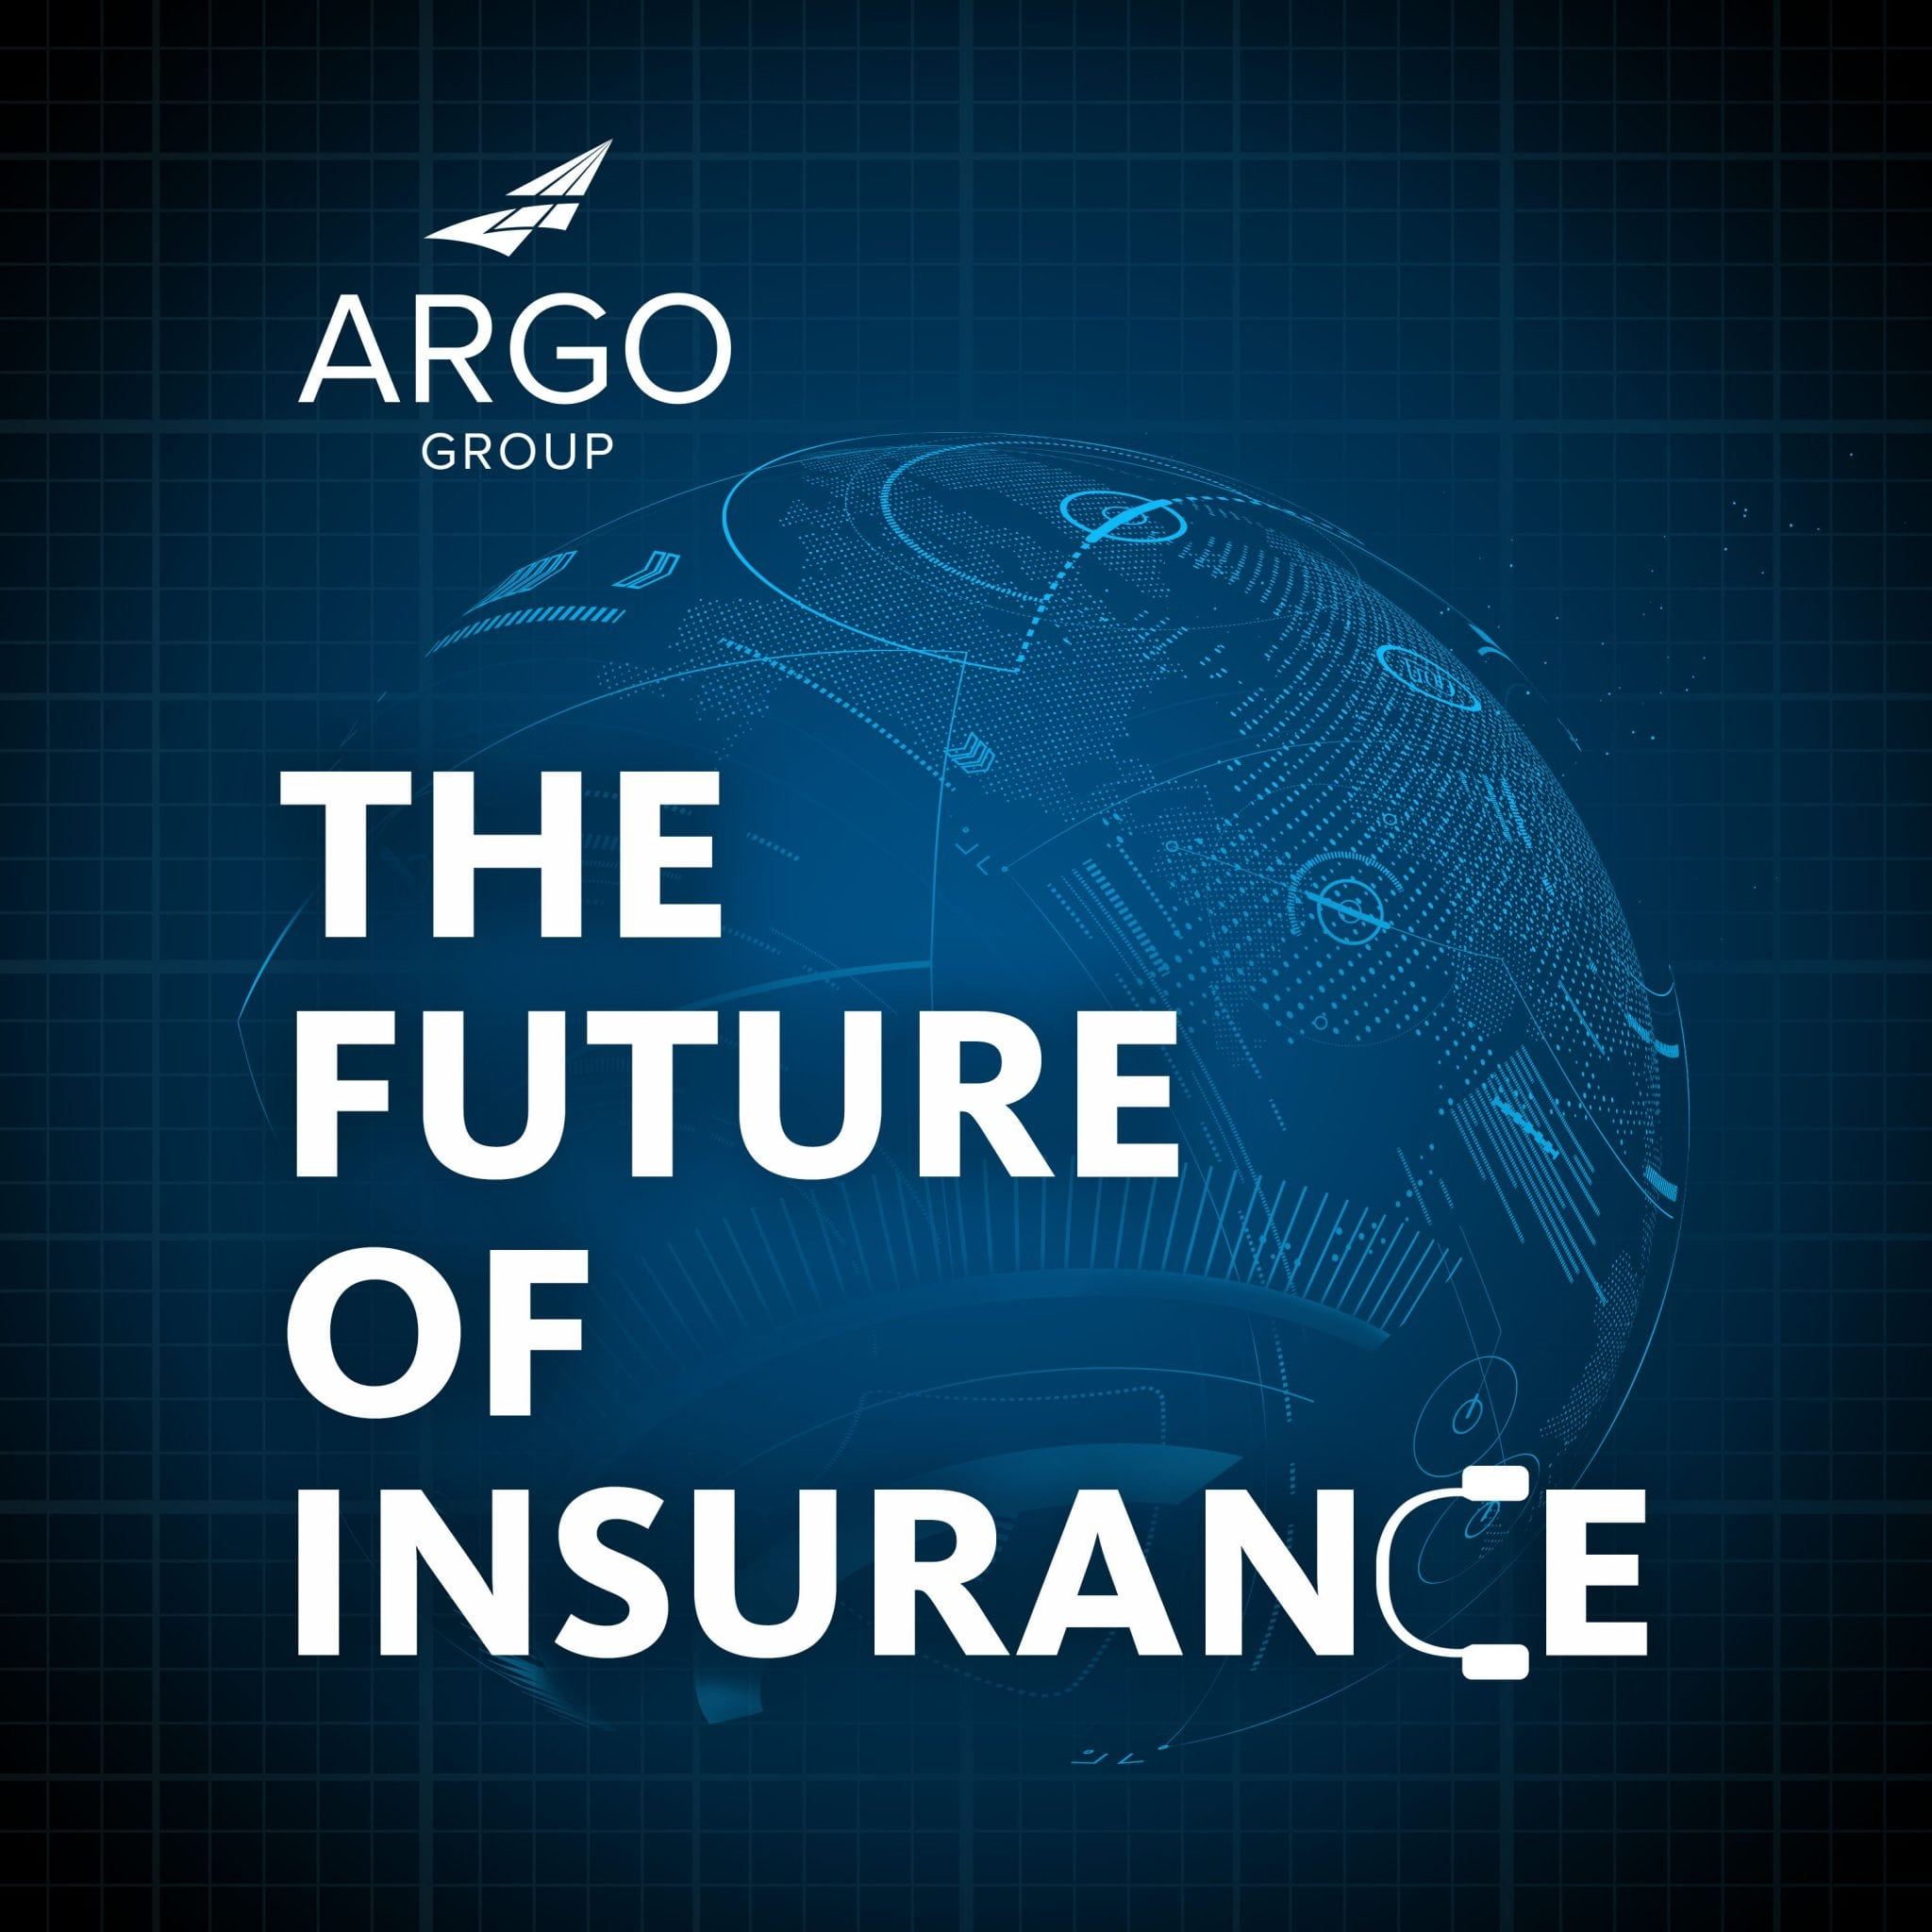 The Future of Insurance logo with digital globe representation in background